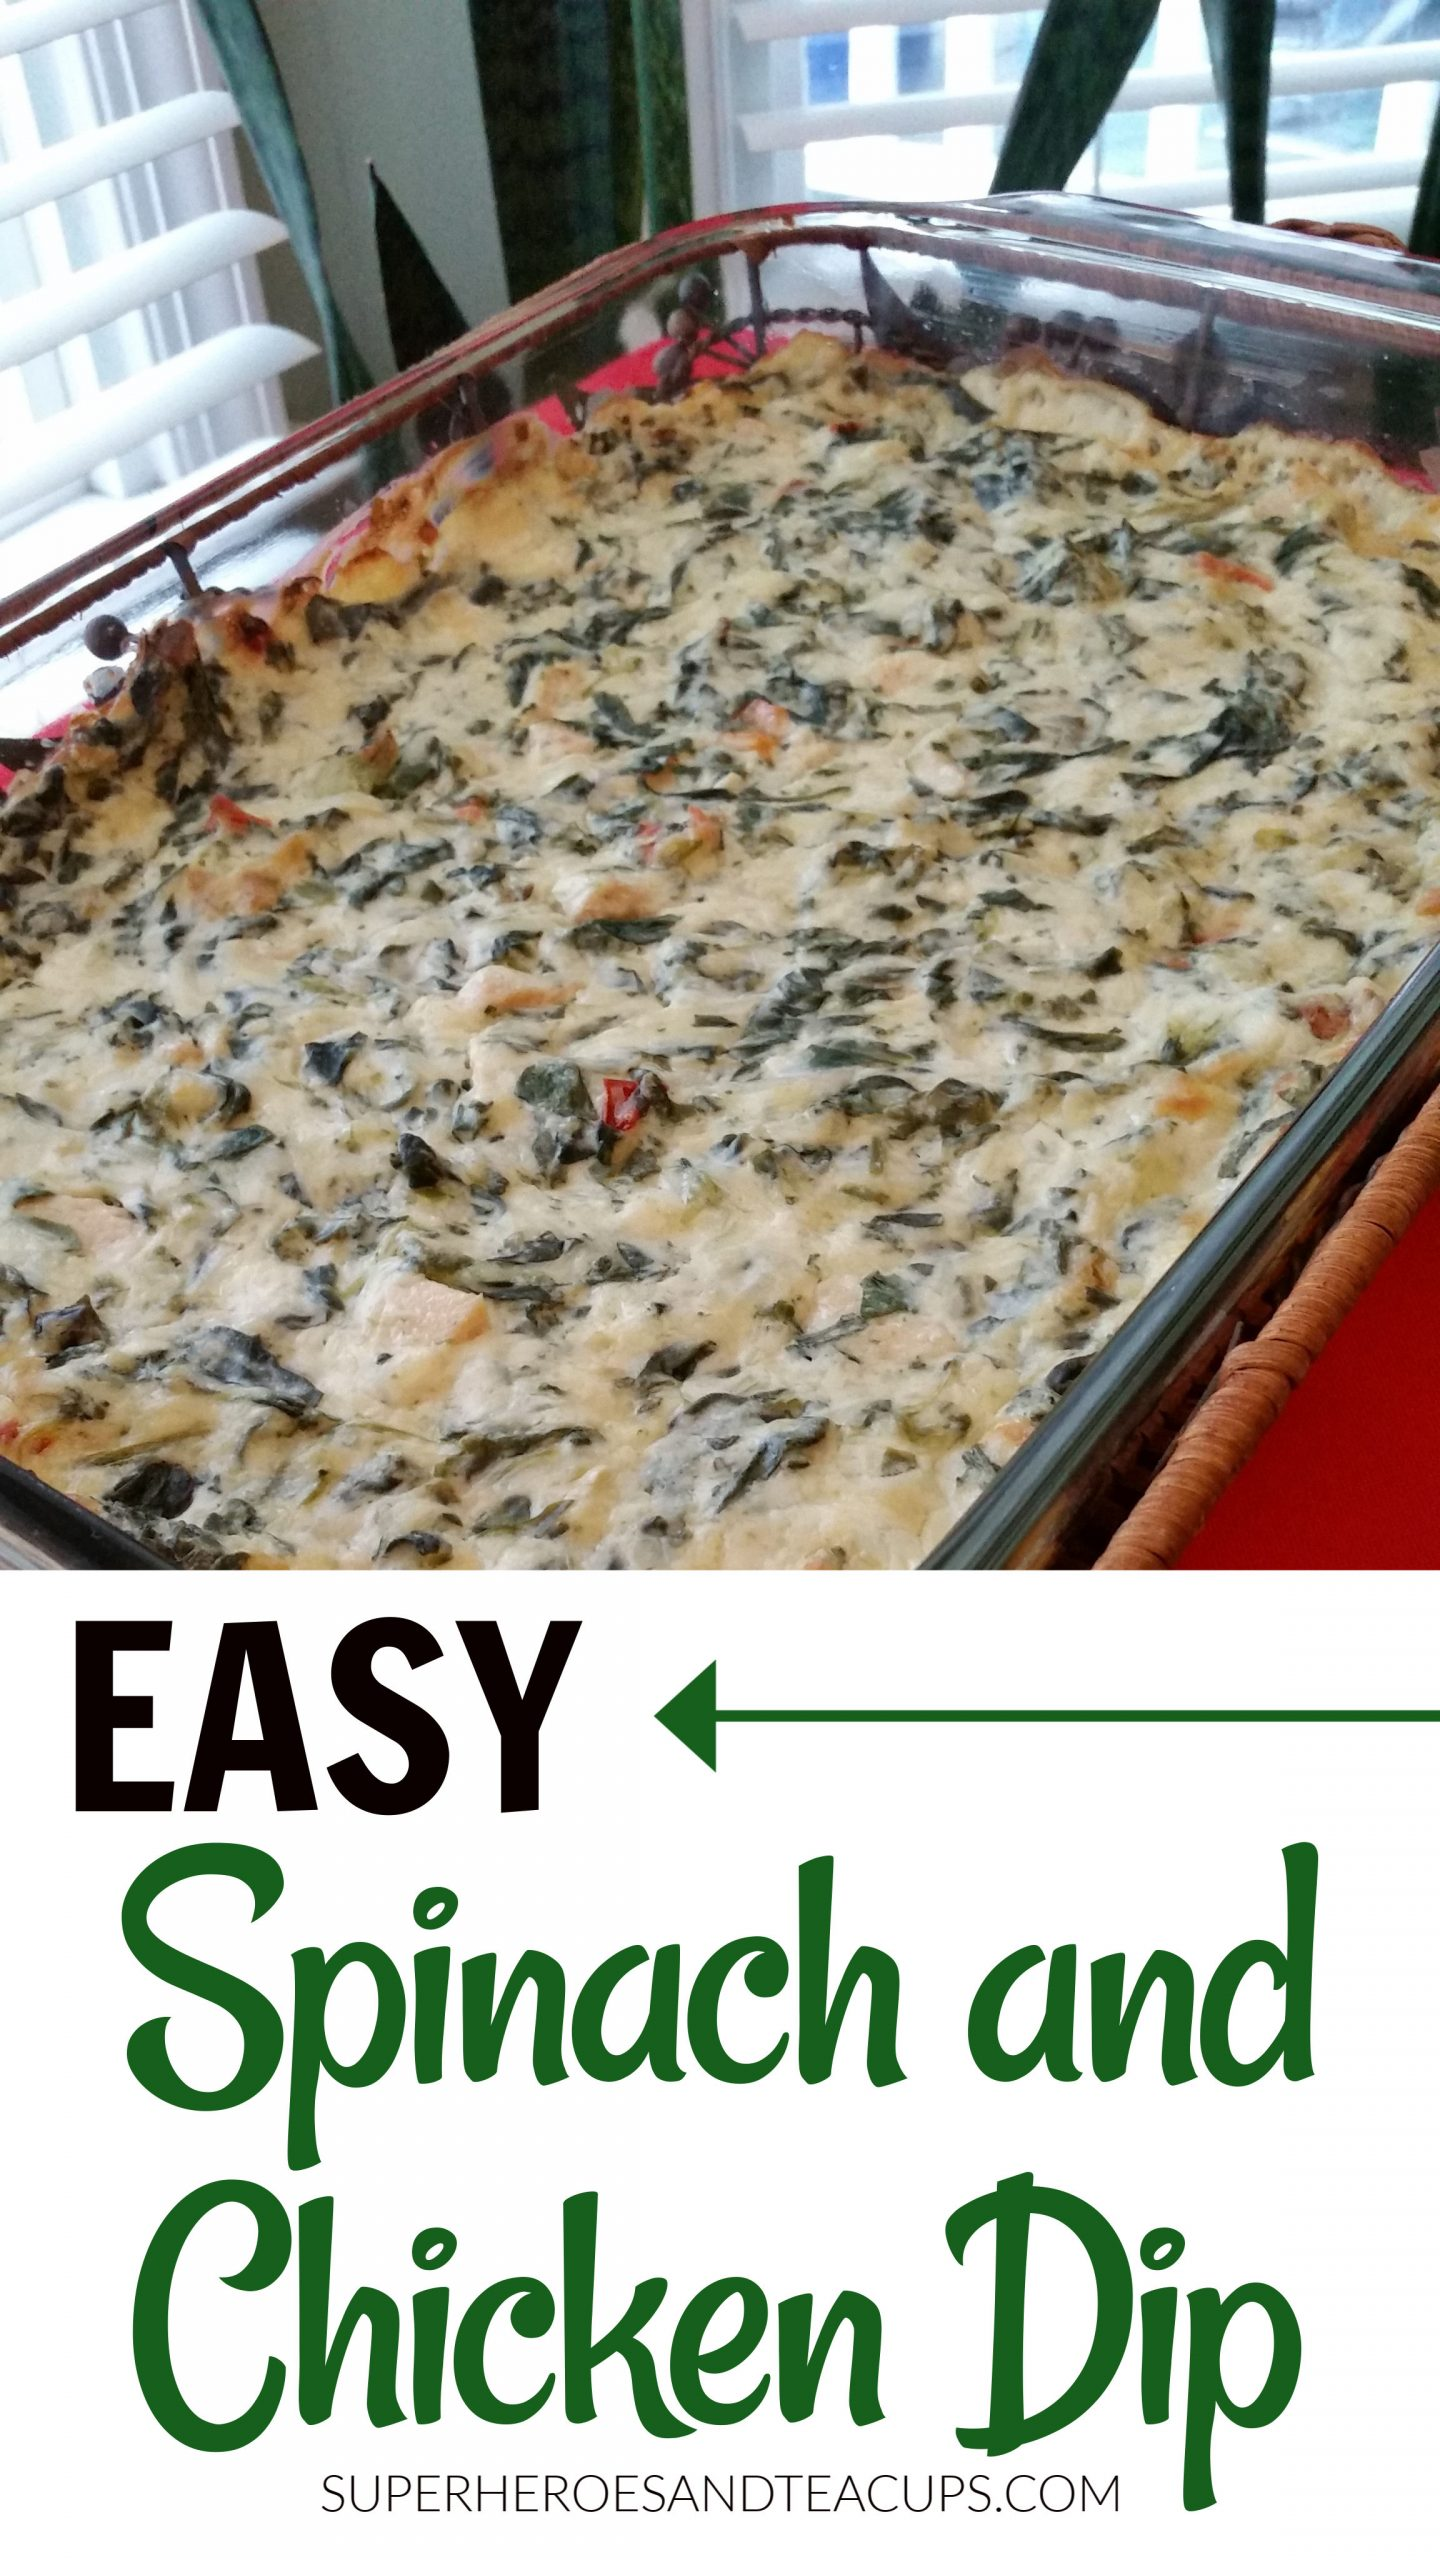 Spinach and Chicken Dip Recipe